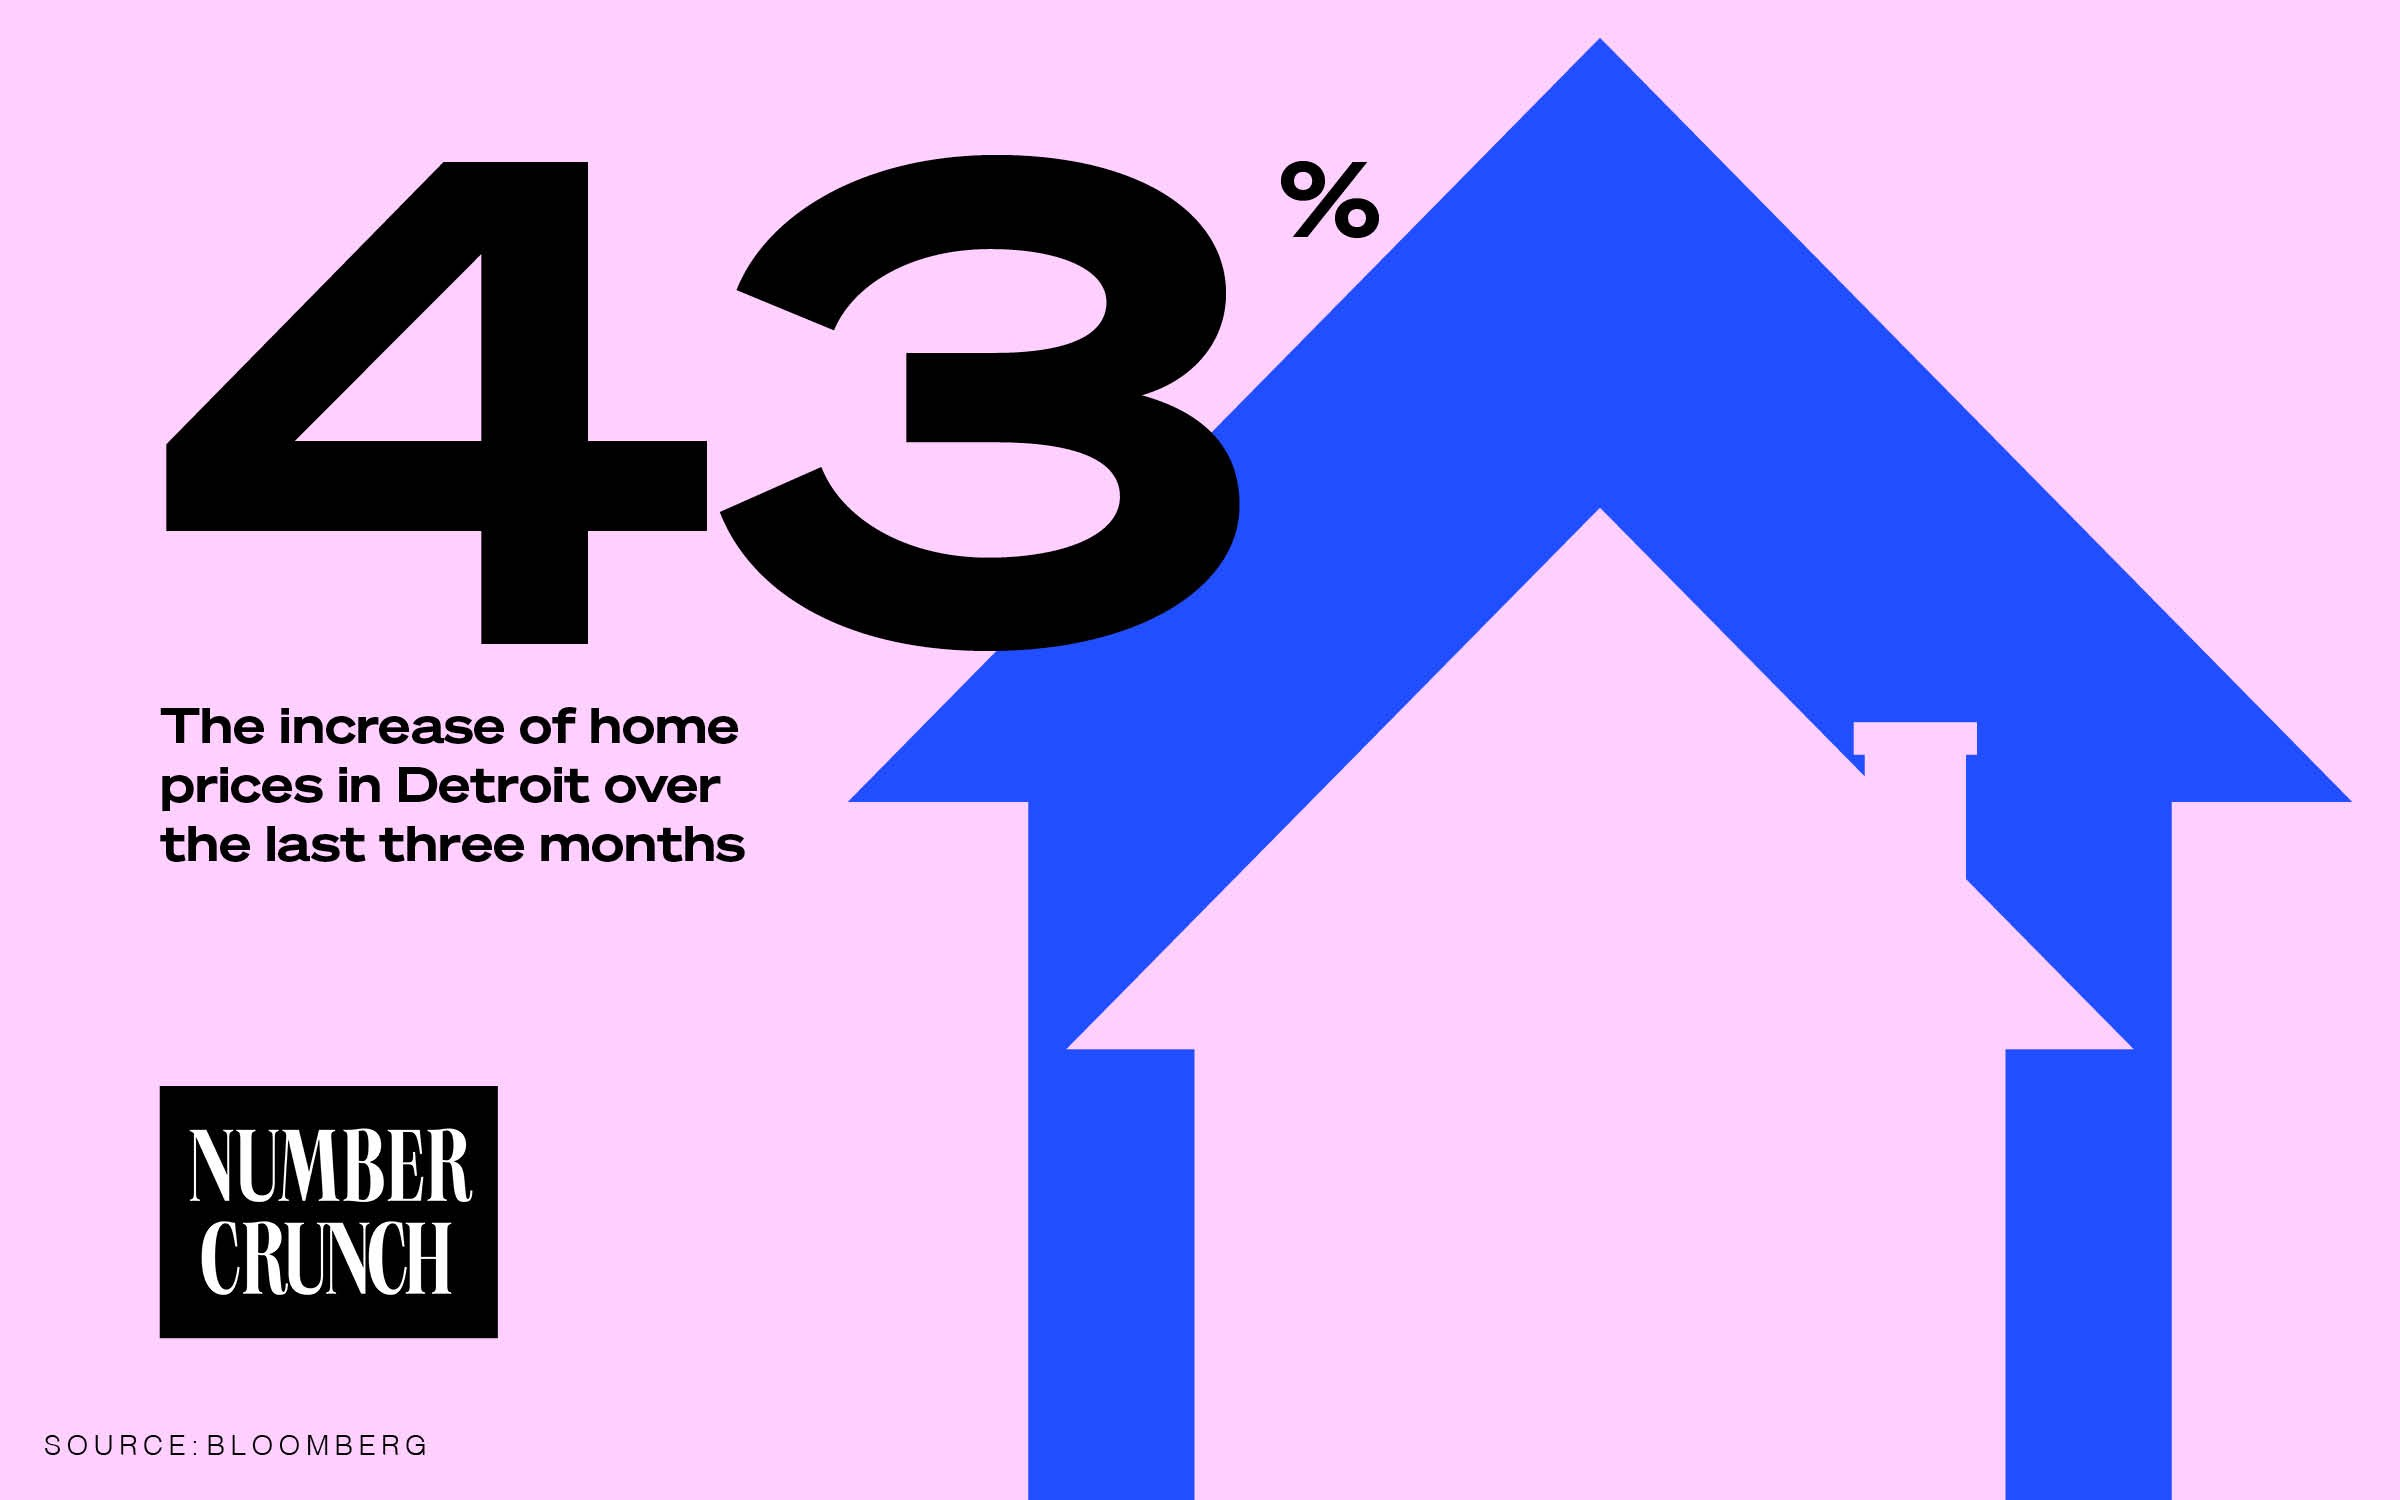 "A Number Crunch logo alongside the text ""43% The increase in home prices in Detroit over the past three months. Source: Bloomberg Businessweek"" next to an illustration of two houses on a pink background."